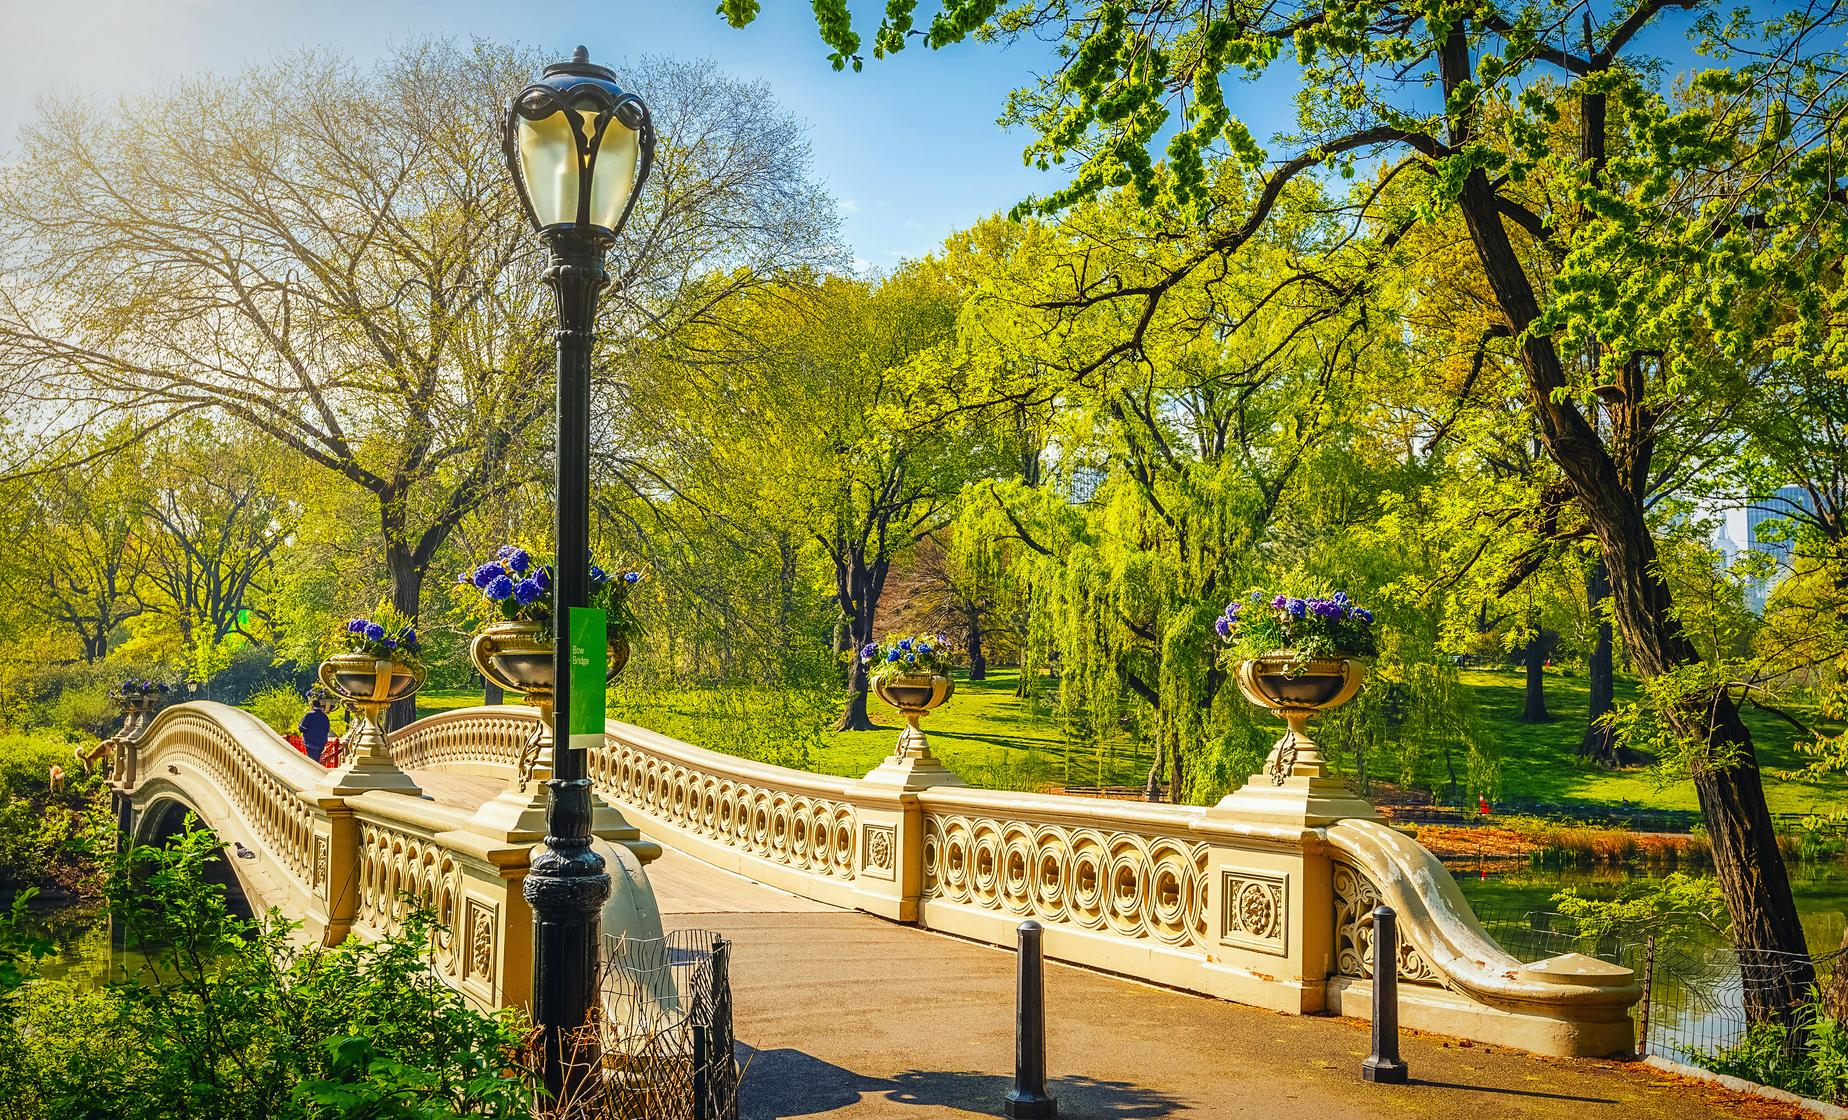 Central Park Movie and TV Sites Tour in New York (Bethesda Terrace, Cherry Hill, Strawberry Fields)